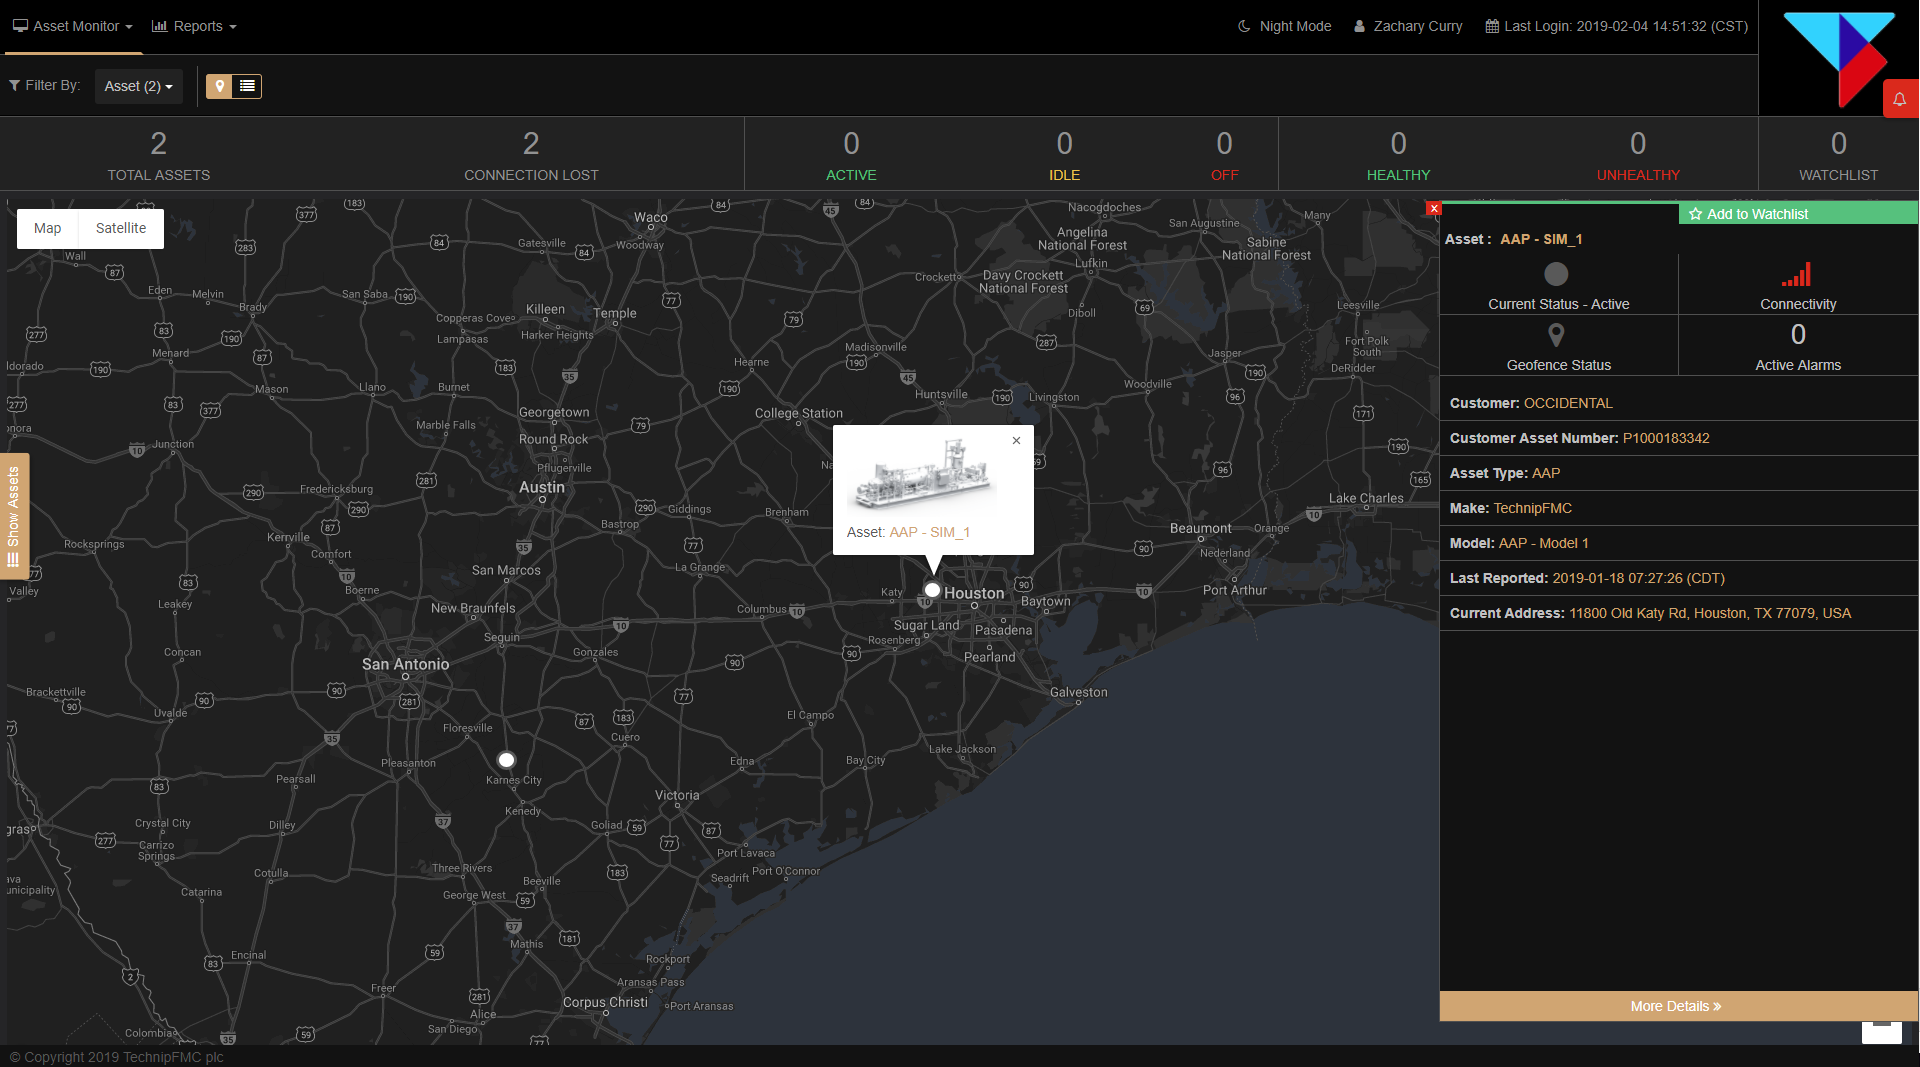 Real-time job and asset dashboard shows location, client, asset health and critical alerts.